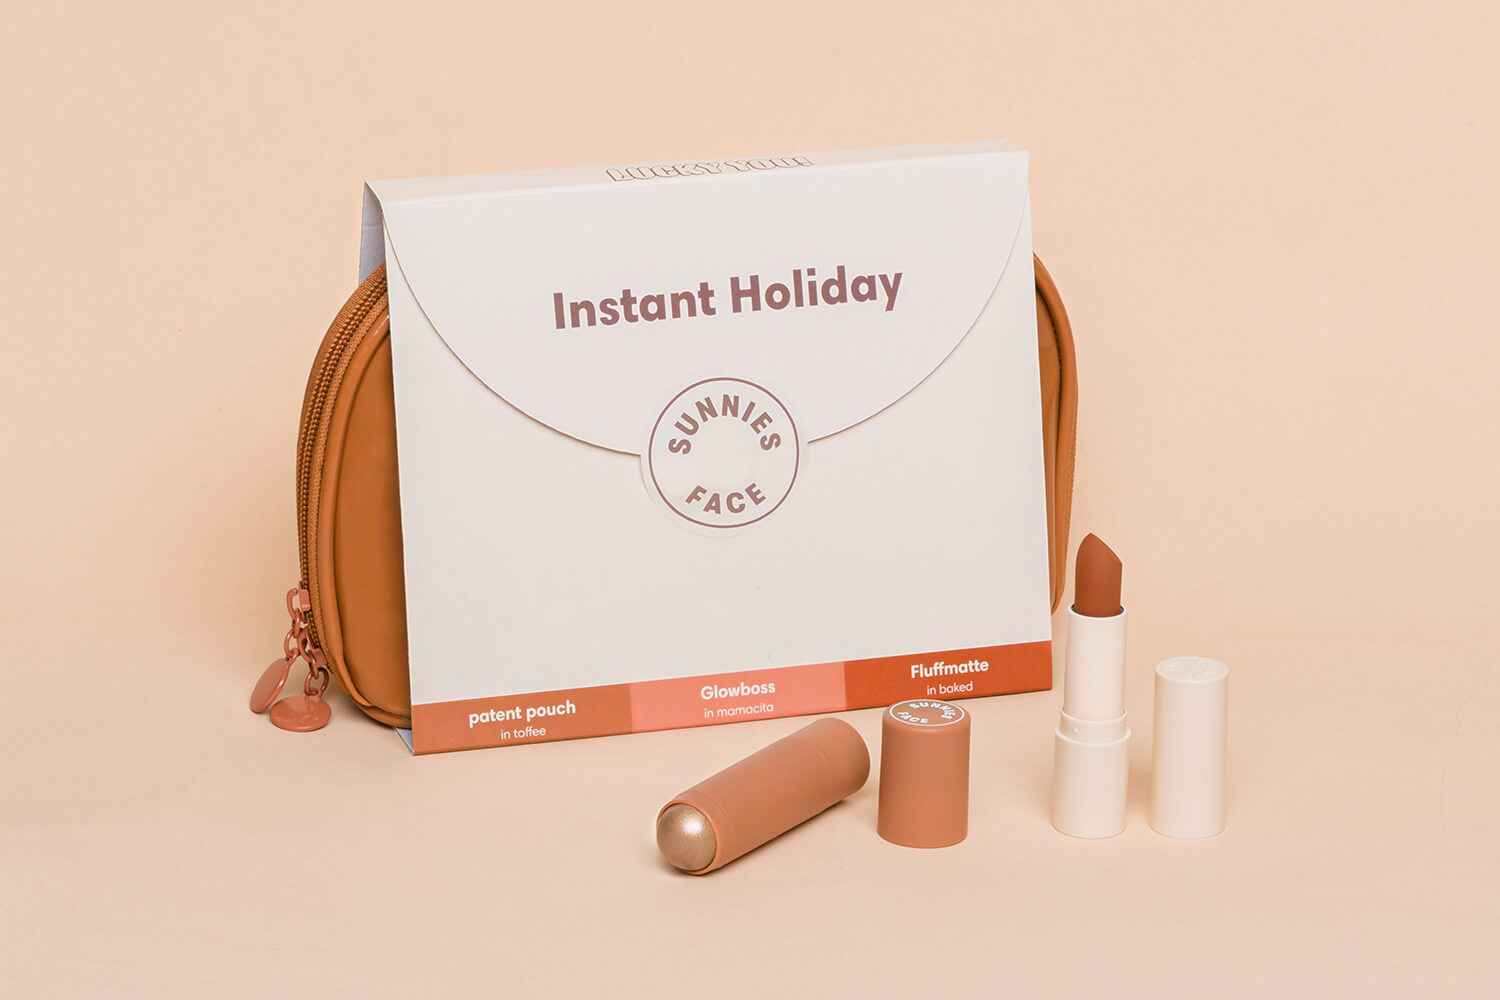 Sunnies Face Holiday Kit - Instant Holiday